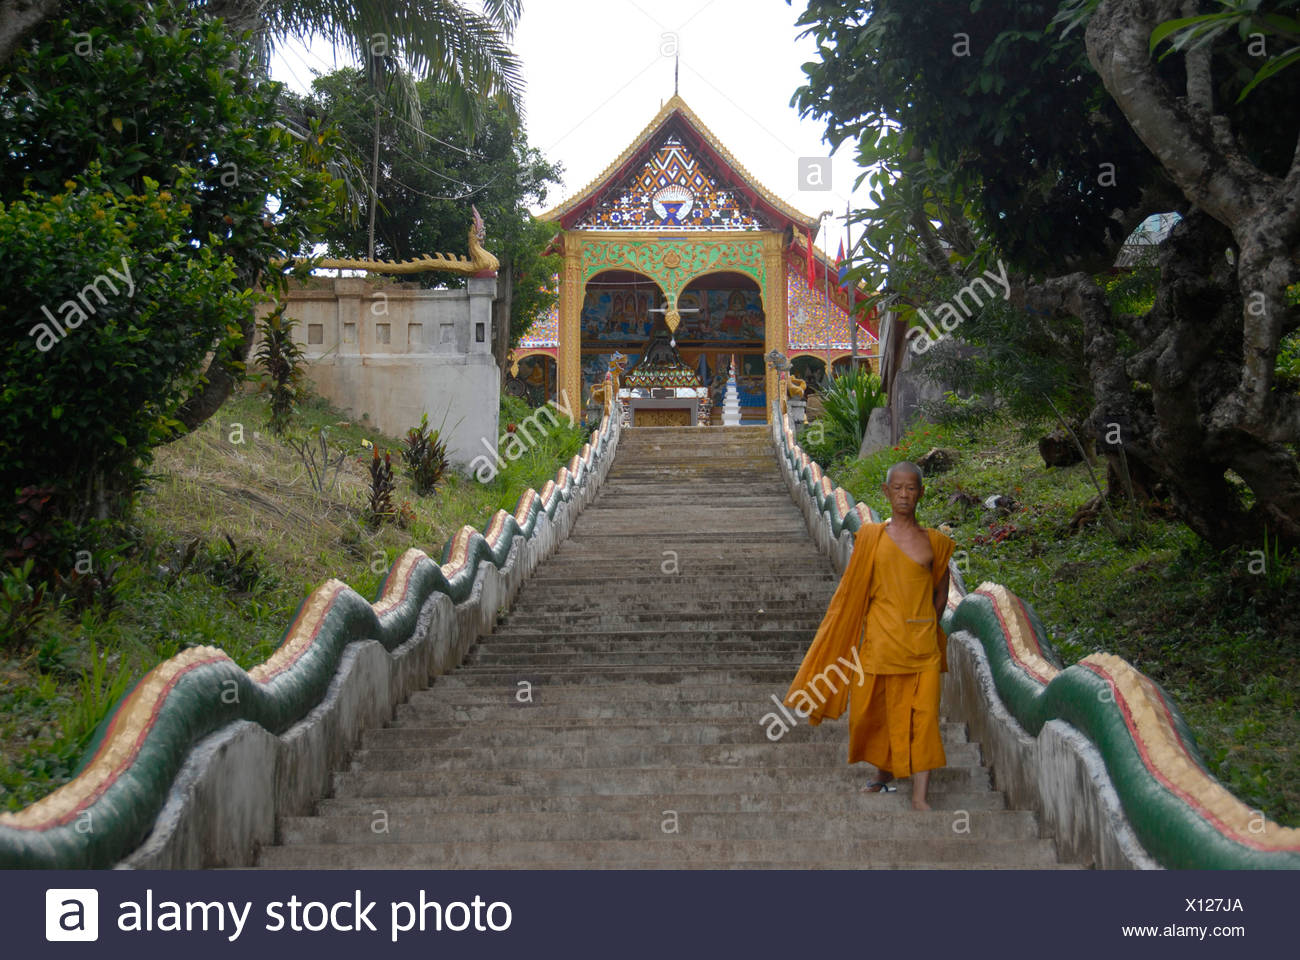 Buddhist monk on the long steps leading to the Wat Jom Khao Manilat temple in Houay Xai, Bokeo Province, Laos, South East Asia - Stock Image